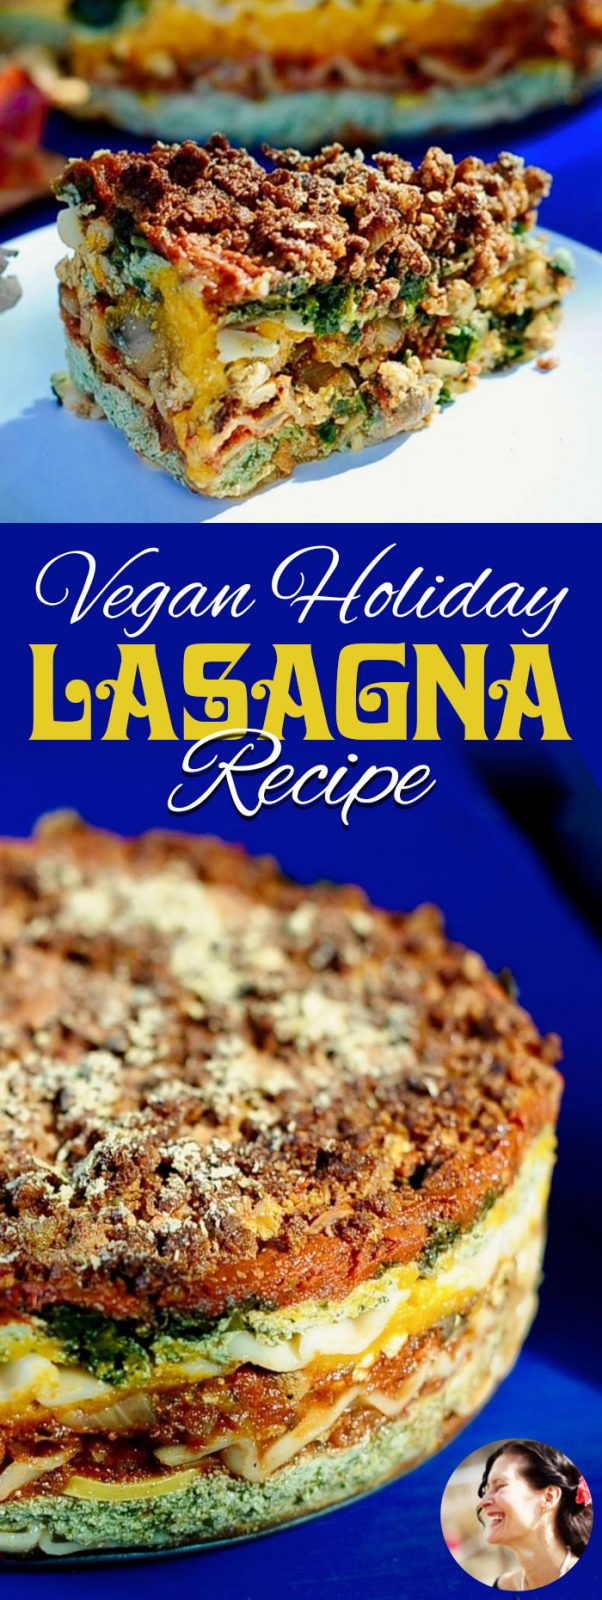 Vegan Lasagna Recipe for the Holidays